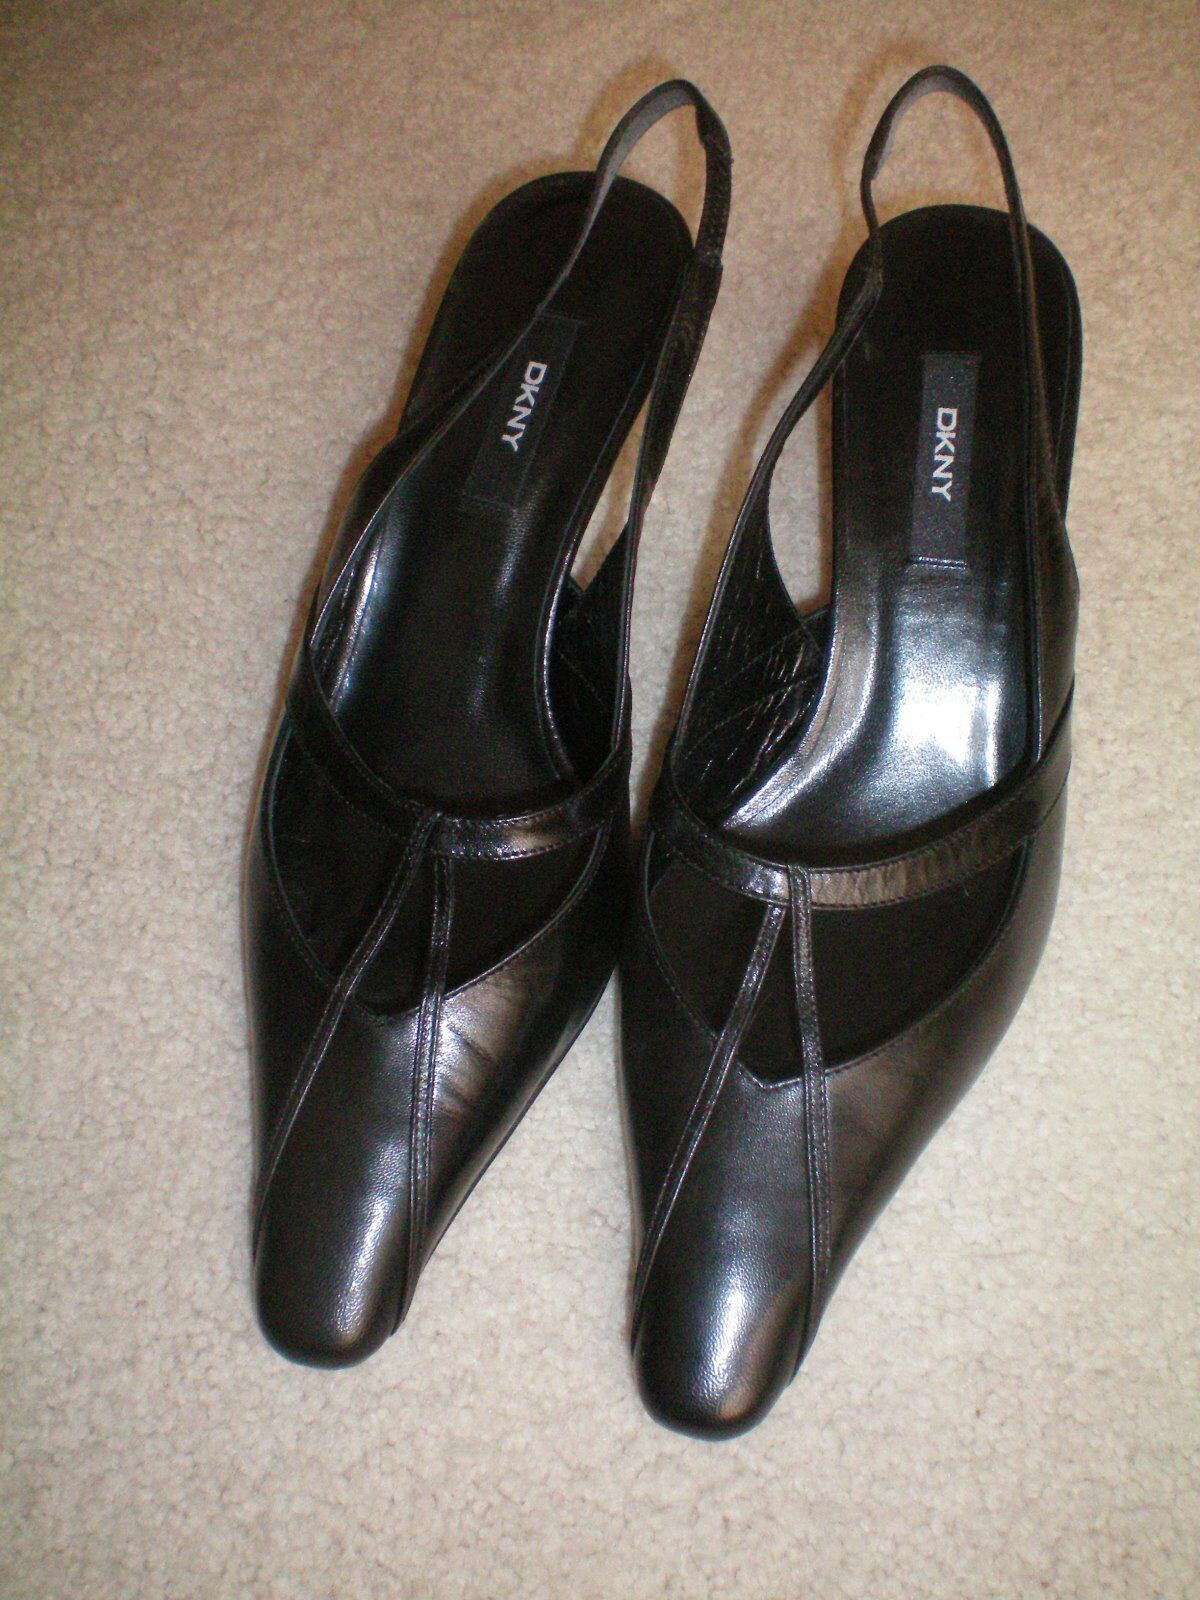 DKNY SHOES NEW, SIZE 10B MADE IN ITALY